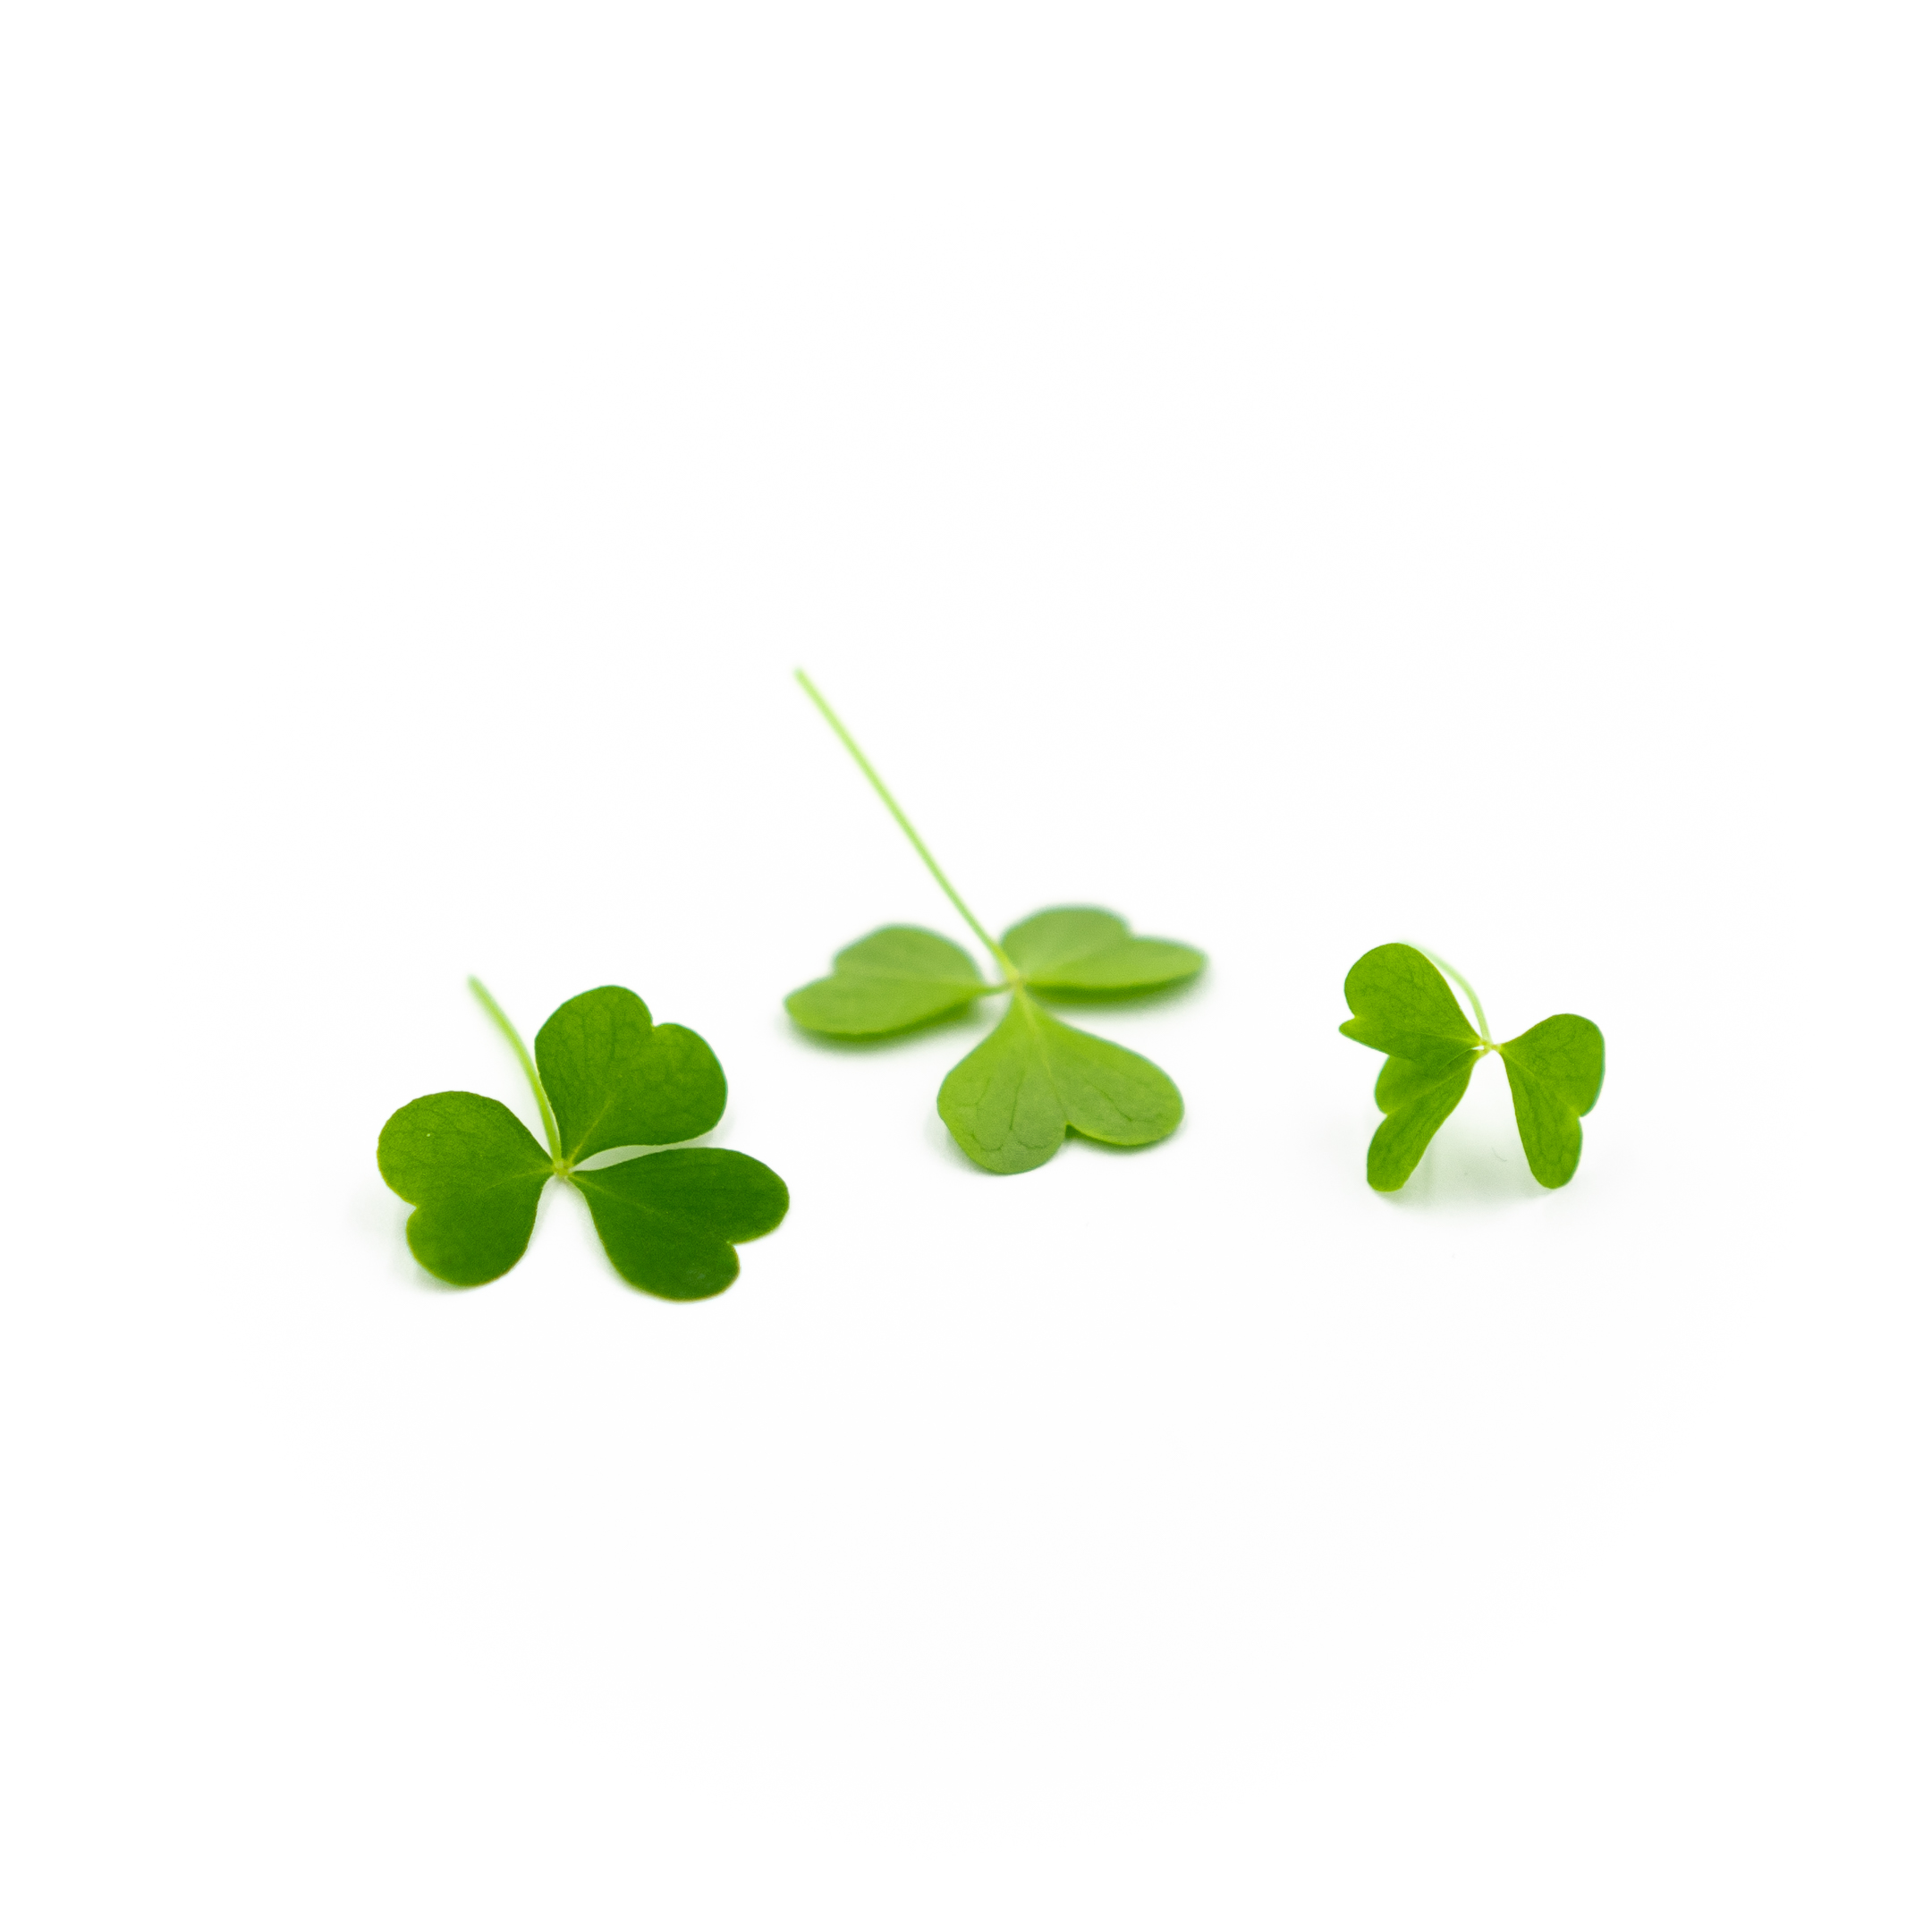 Sour tangy flavor in a soft, clover-shaped leaf